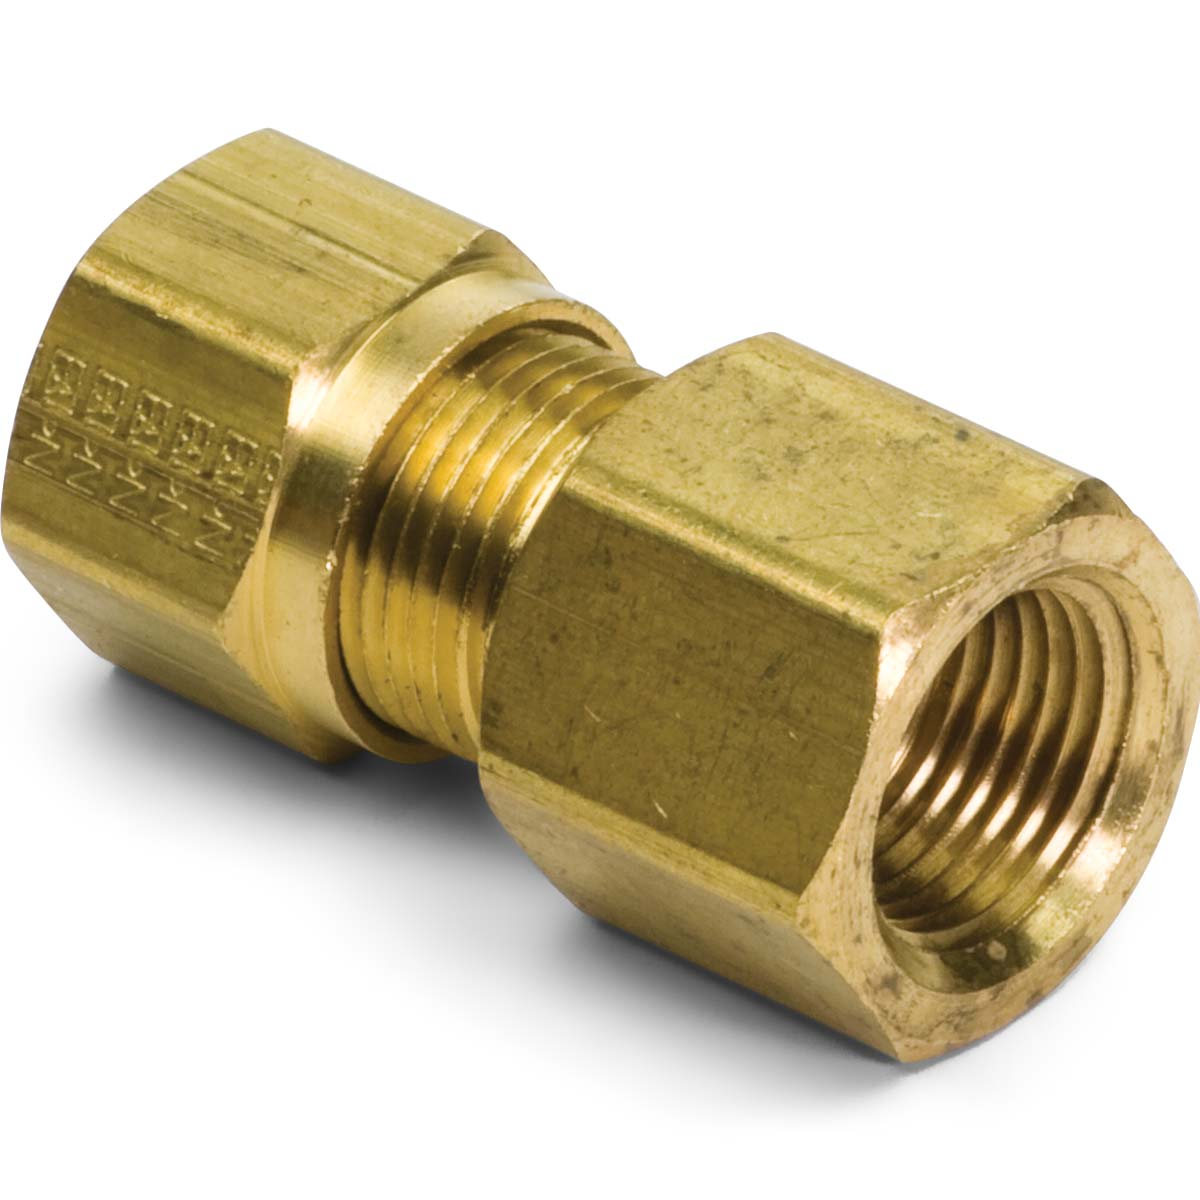 Female connector kimball midwest